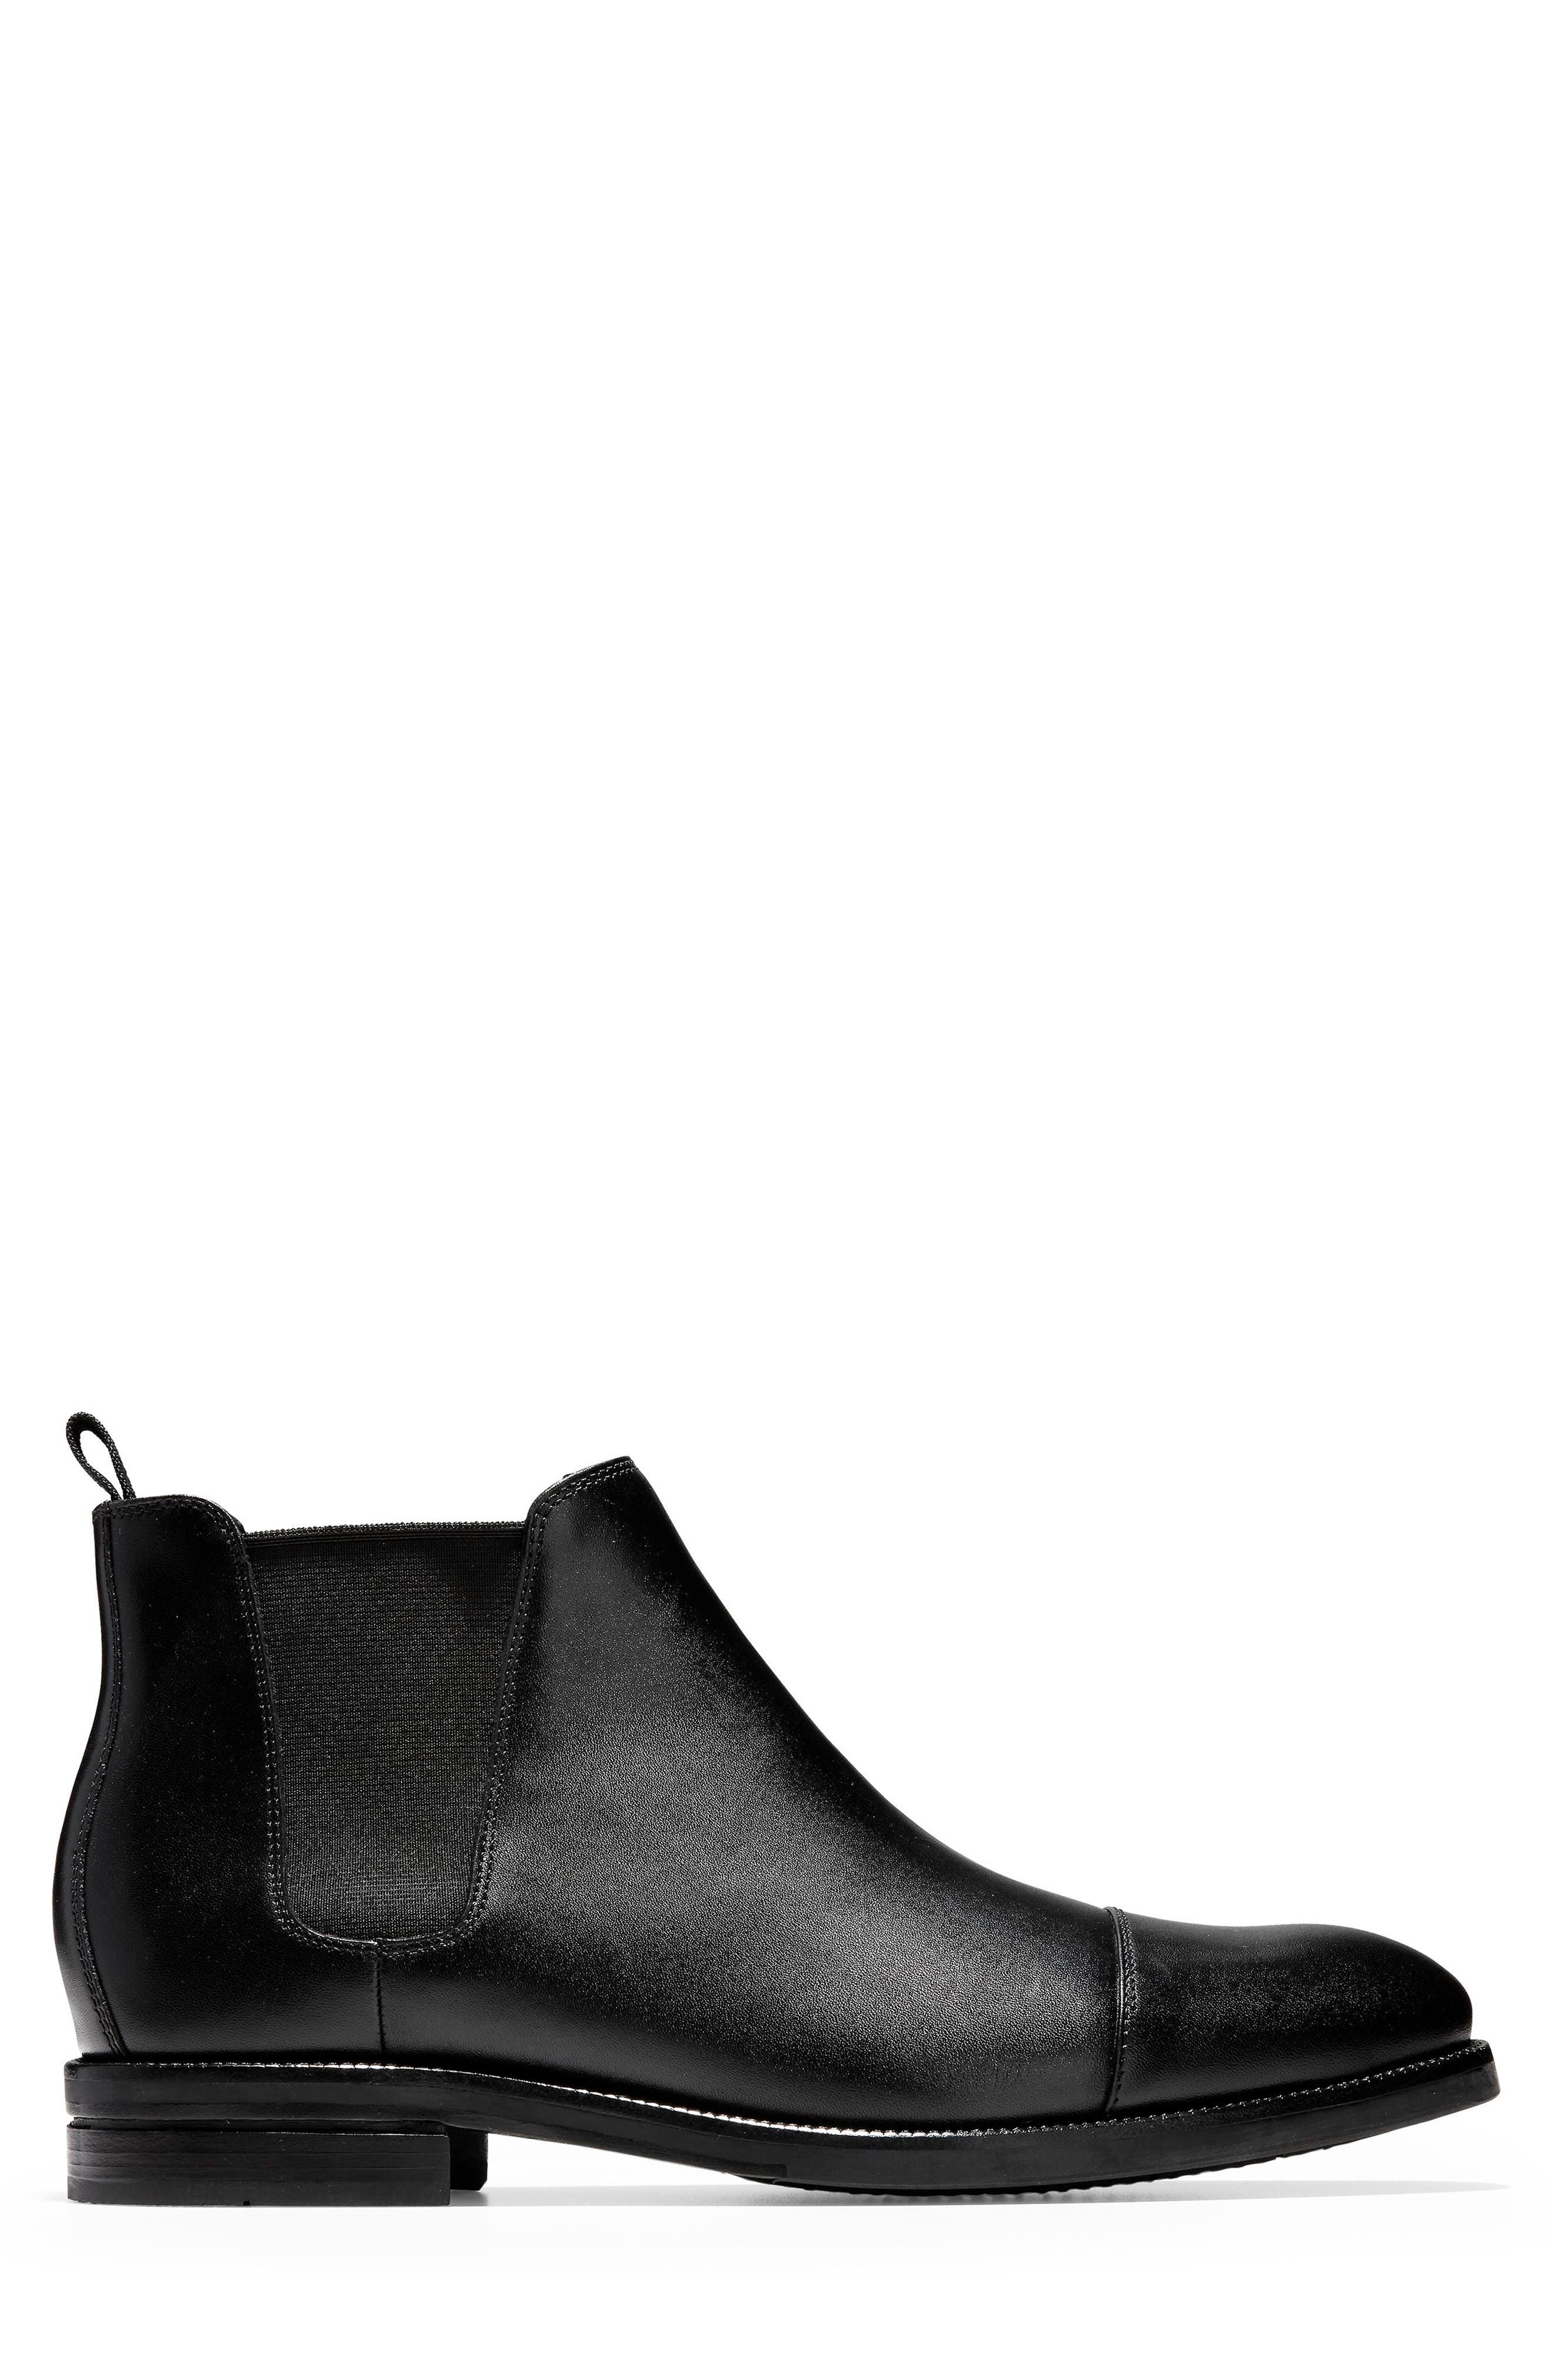 COLE HAAN, Wagner Grand Chelsea Boot, Alternate thumbnail 3, color, 001